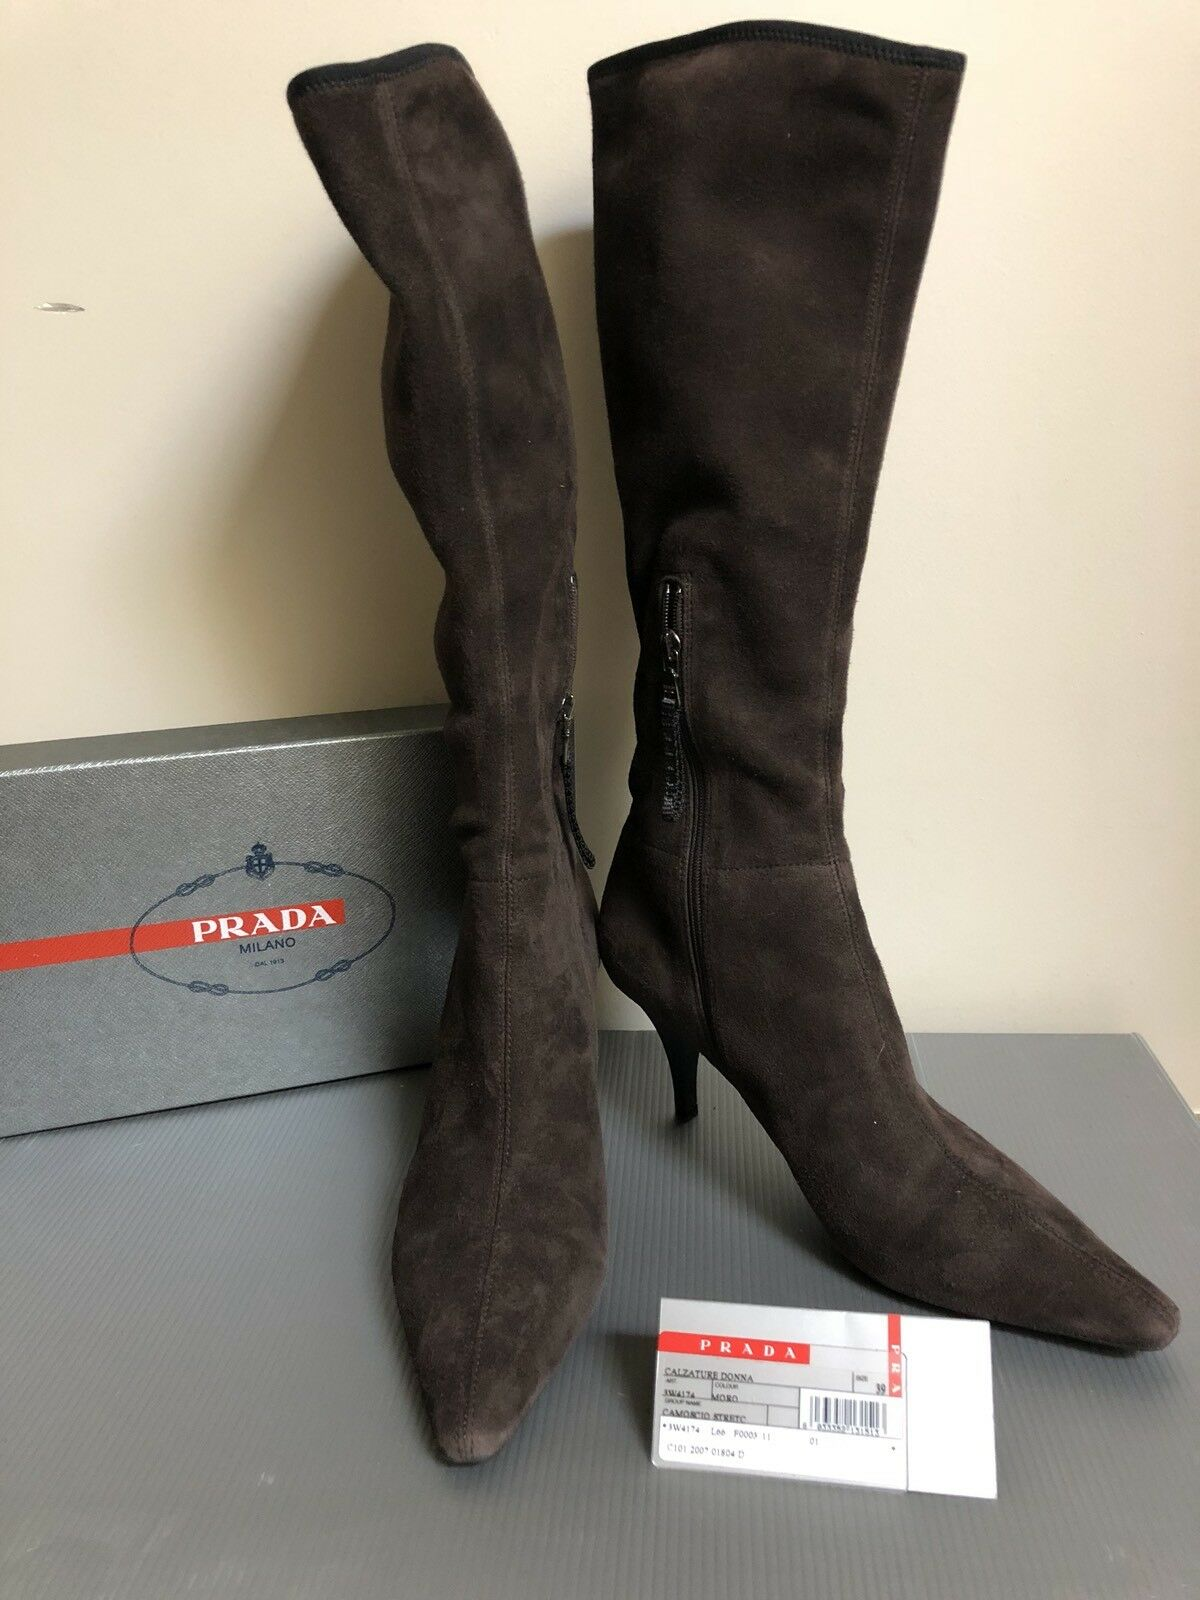 Auth PRADA 39 pointy toe boots Camoscio Stretch Suede brown MINT